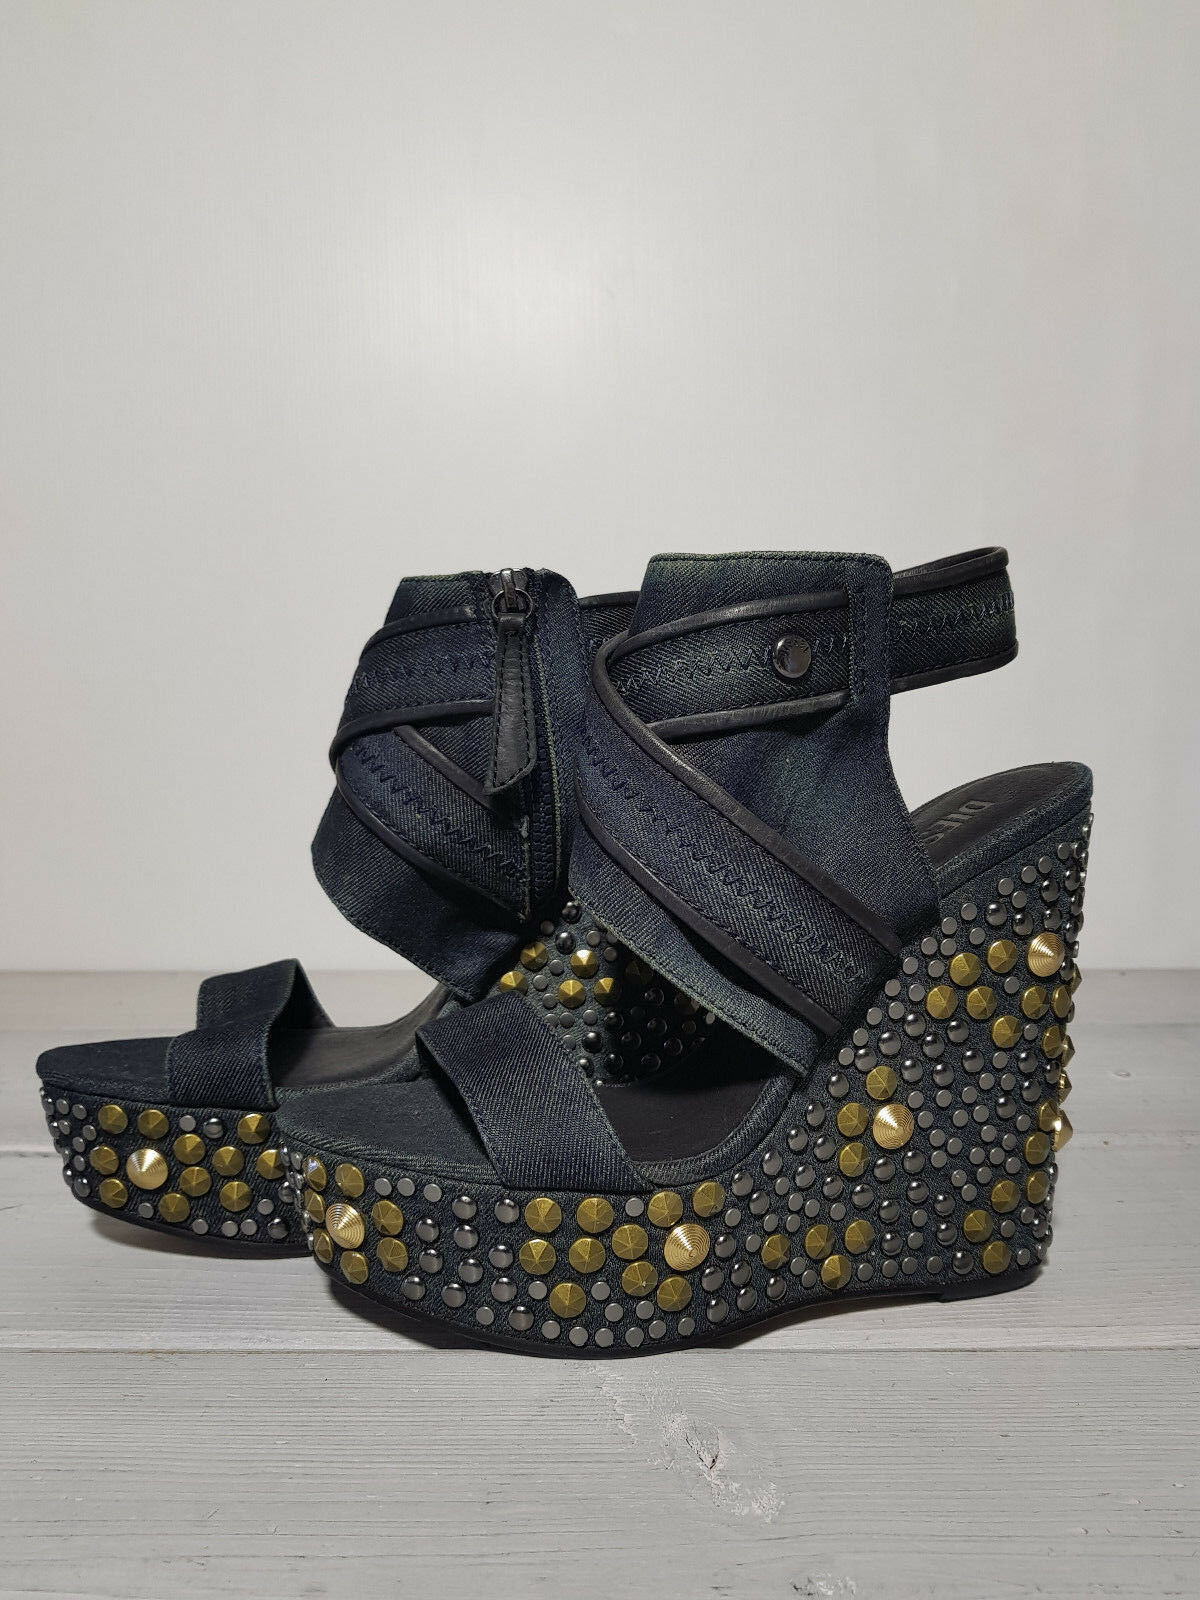 295 NEW DIESEL DIESEL DIESEL WOMEN'S SHOES LUXYSHINE KLOEY T6067 DENIM WEDGE SANDAL DENIM 3d5c7d